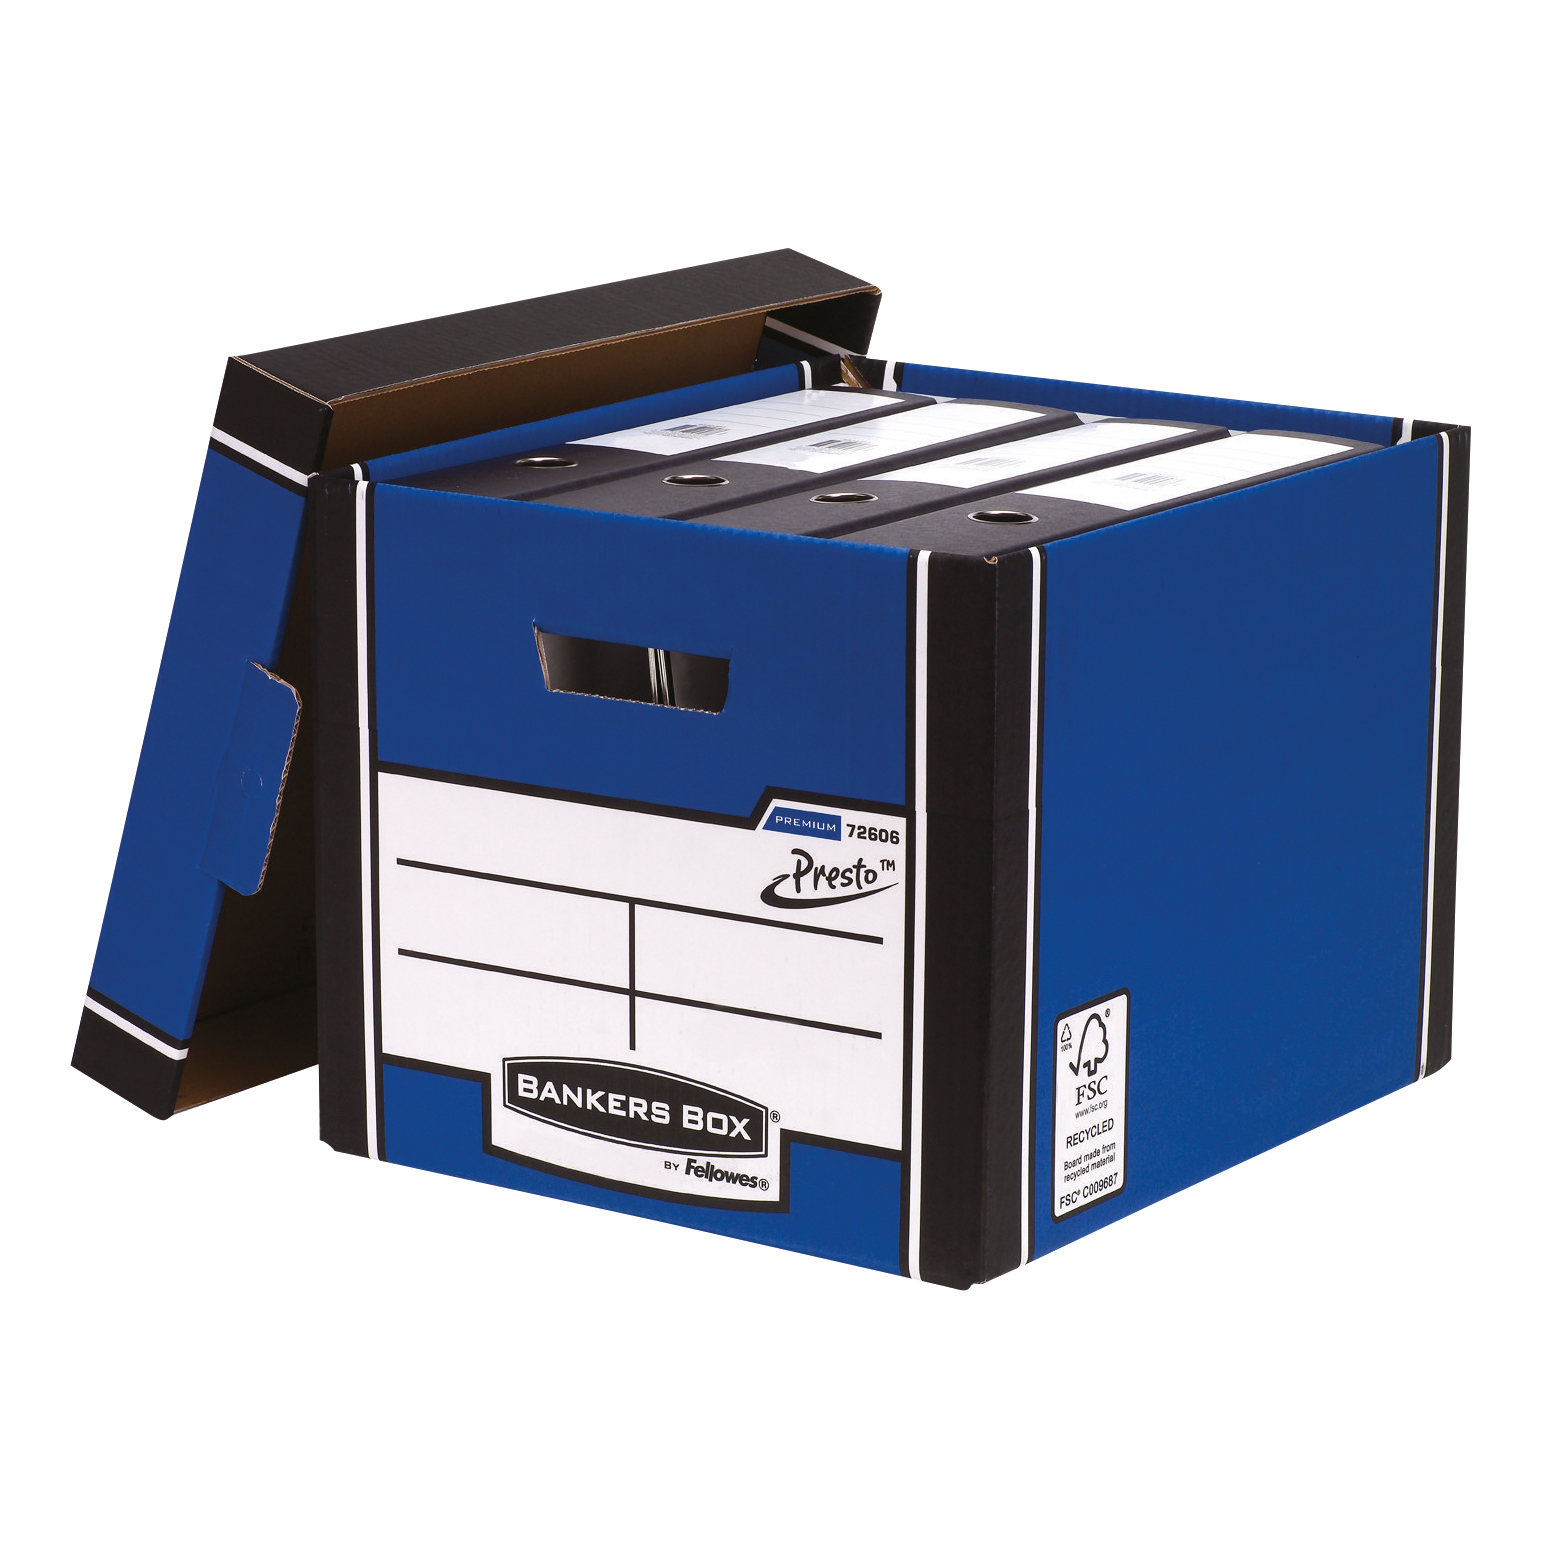 Bankers Box Premium Storage Box (Presto) Tall Blue FSC Ref 7260603 [Pack 12] [12 for the price of 10]